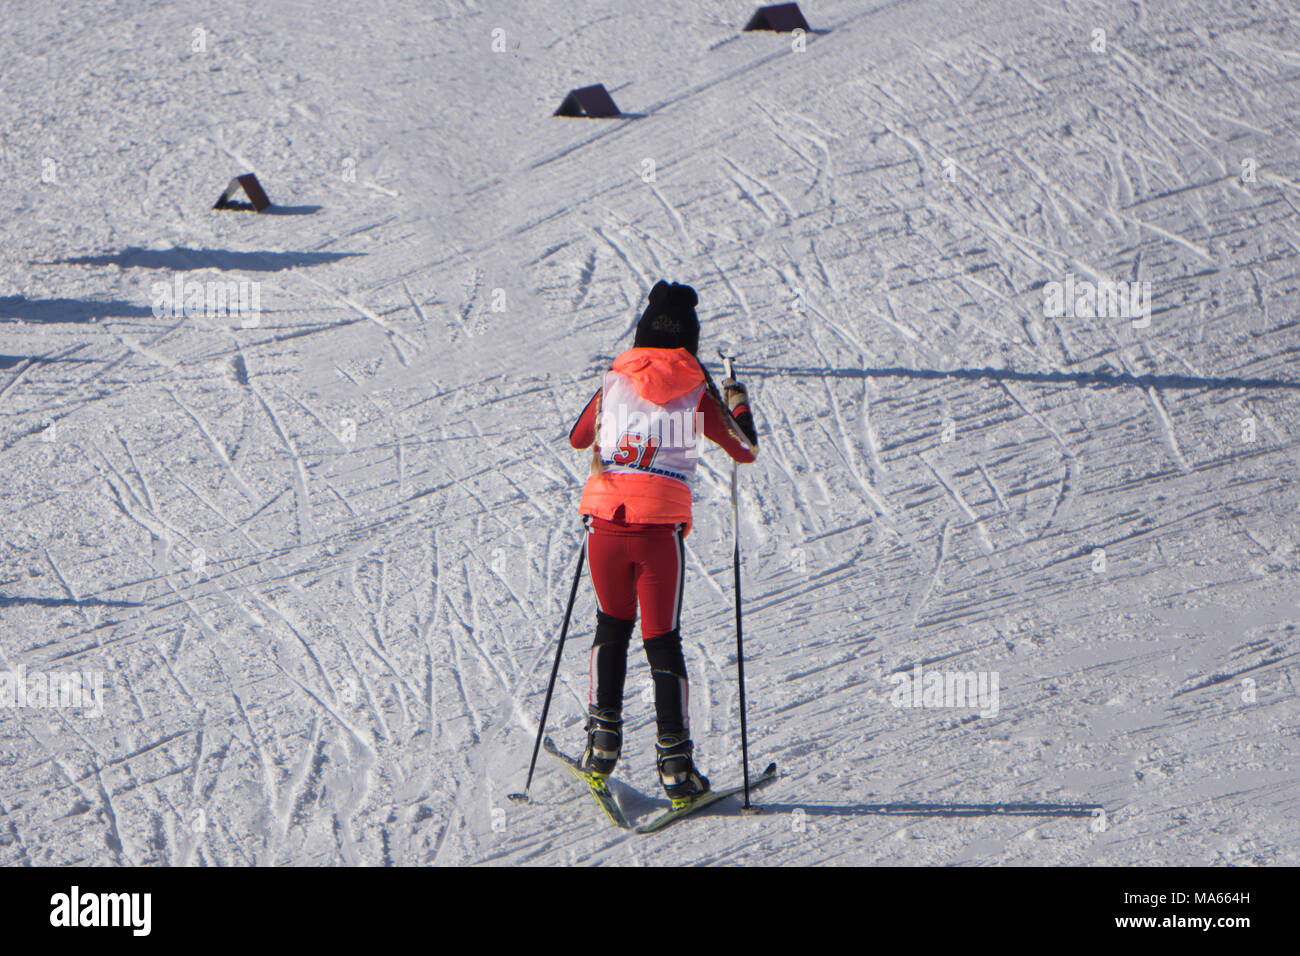 Competitions in downhill skiing among juniors are held annually on snow-covered slopes of the ski resort Gorki Gorod . Children skiers are going to st - Stock Image